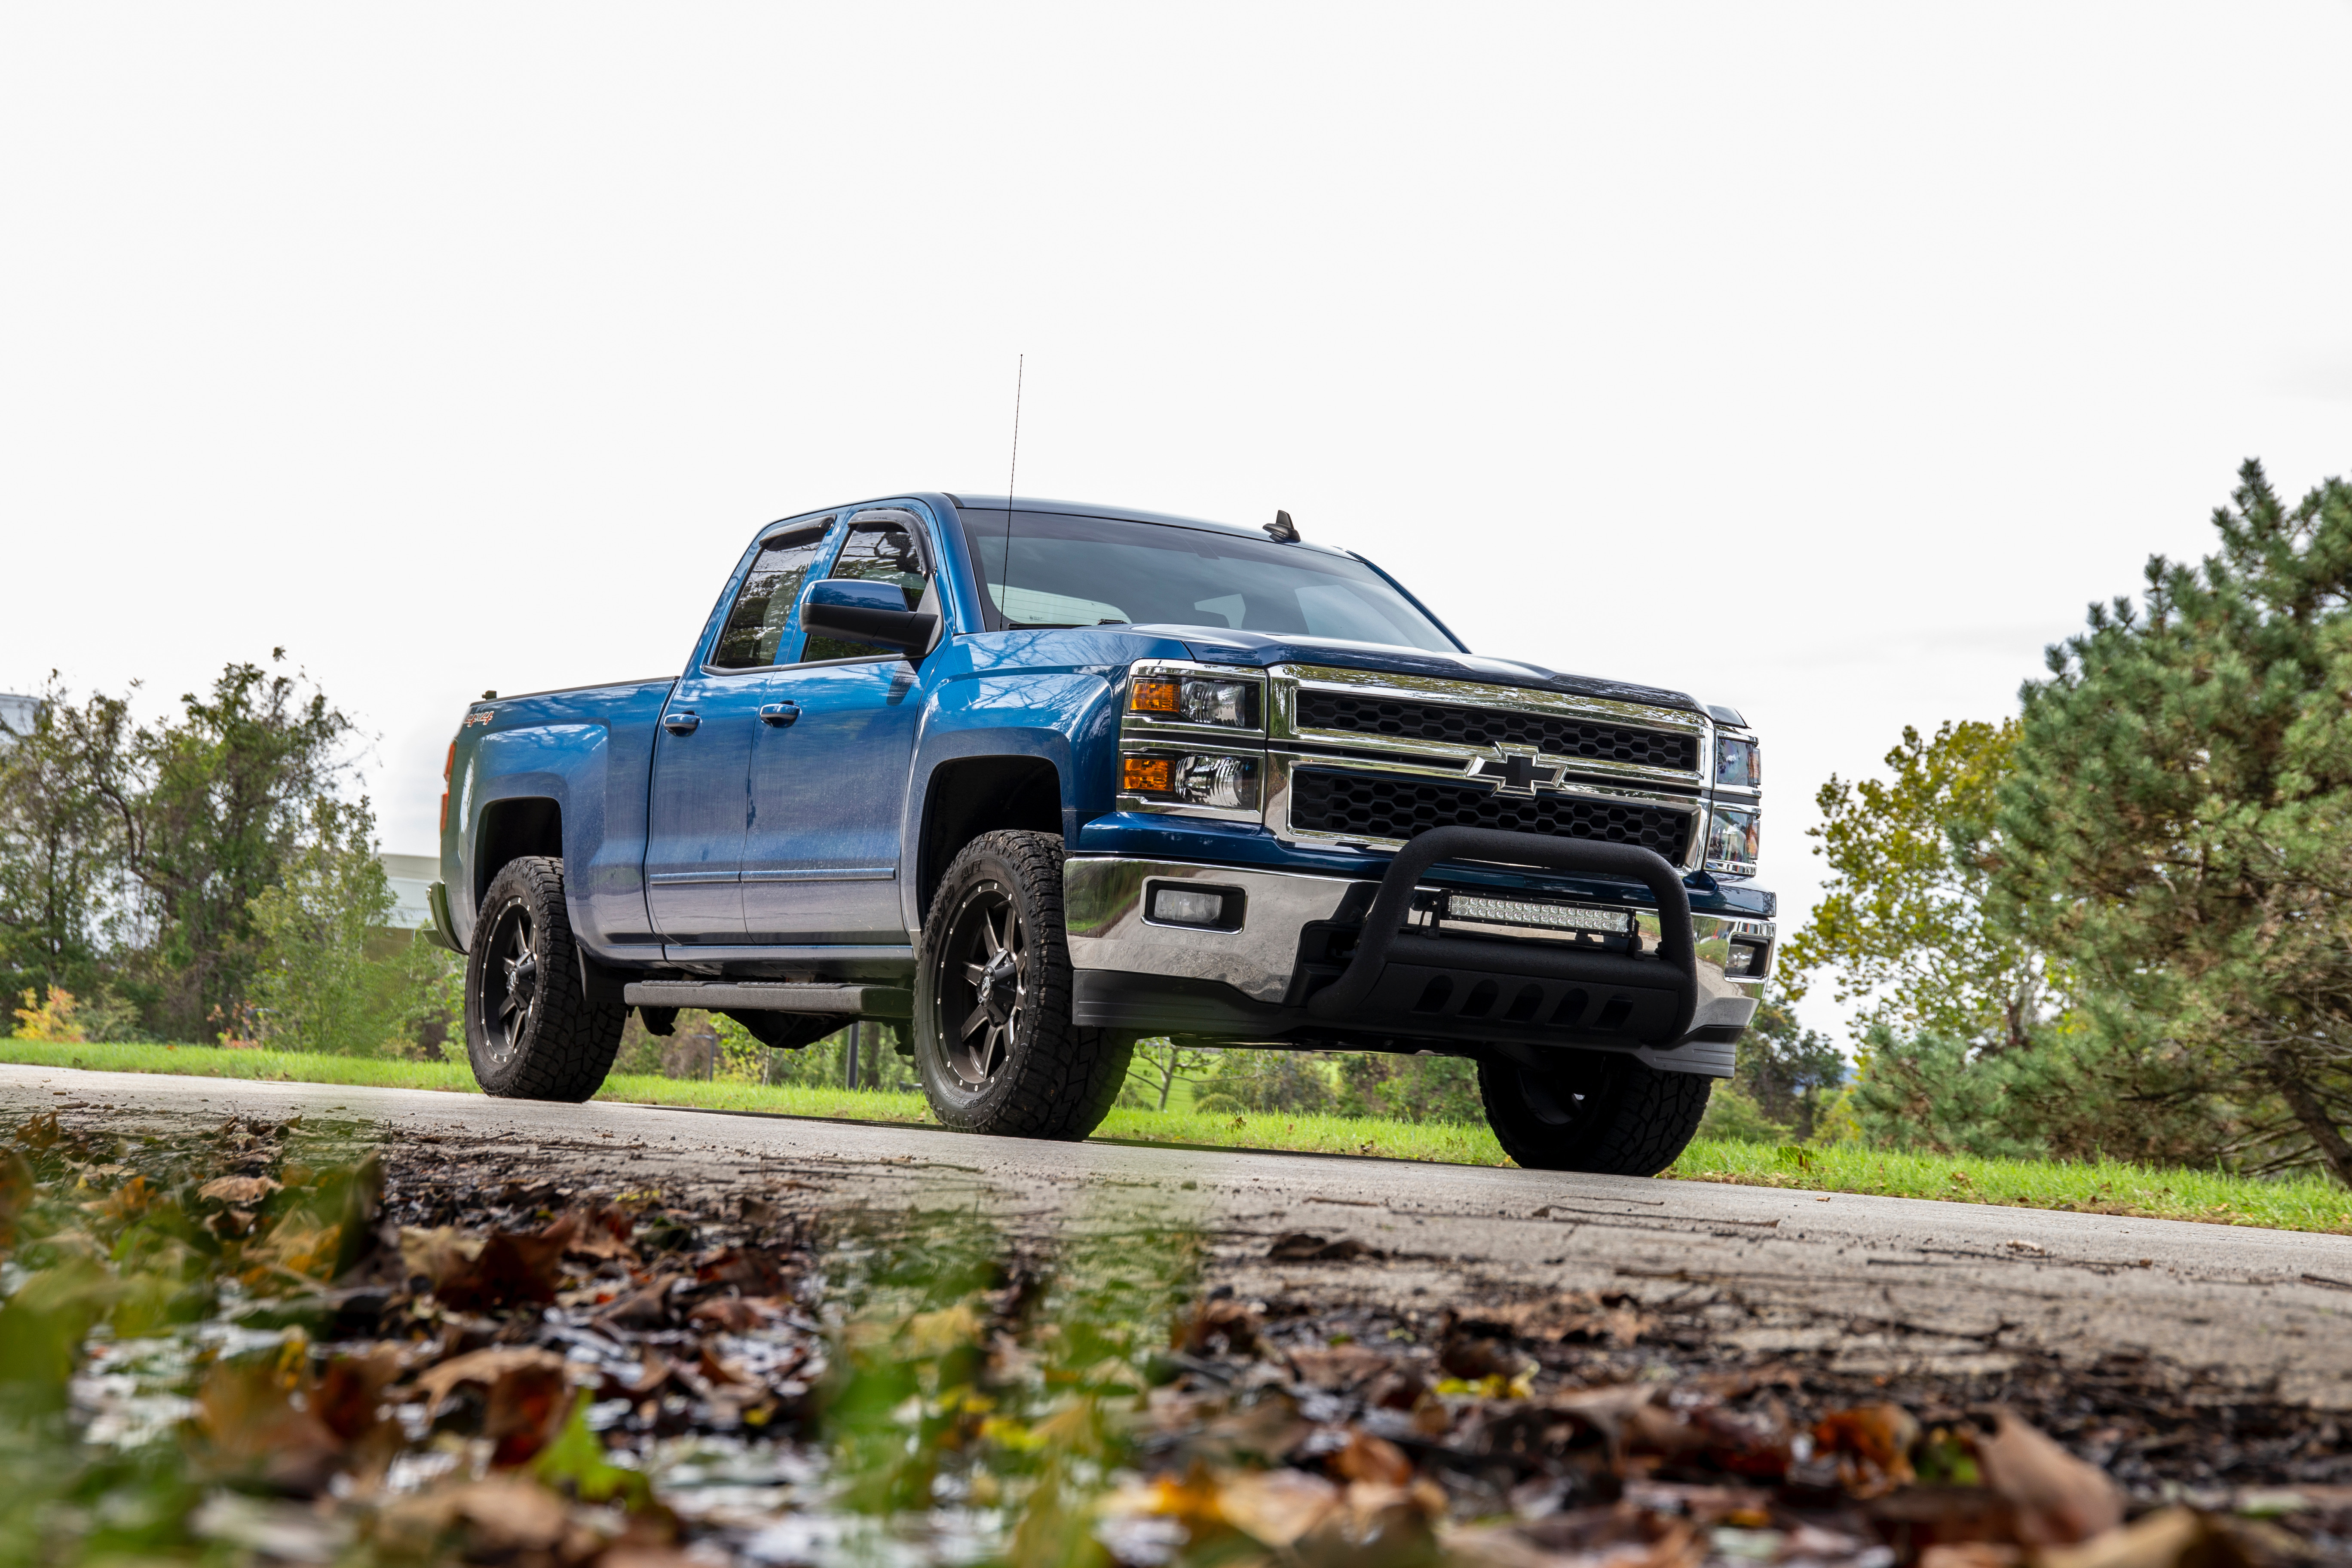 American Trucks, Giveaway contest offers $5,000 in truck upgrades, ClassicCars.com Journal